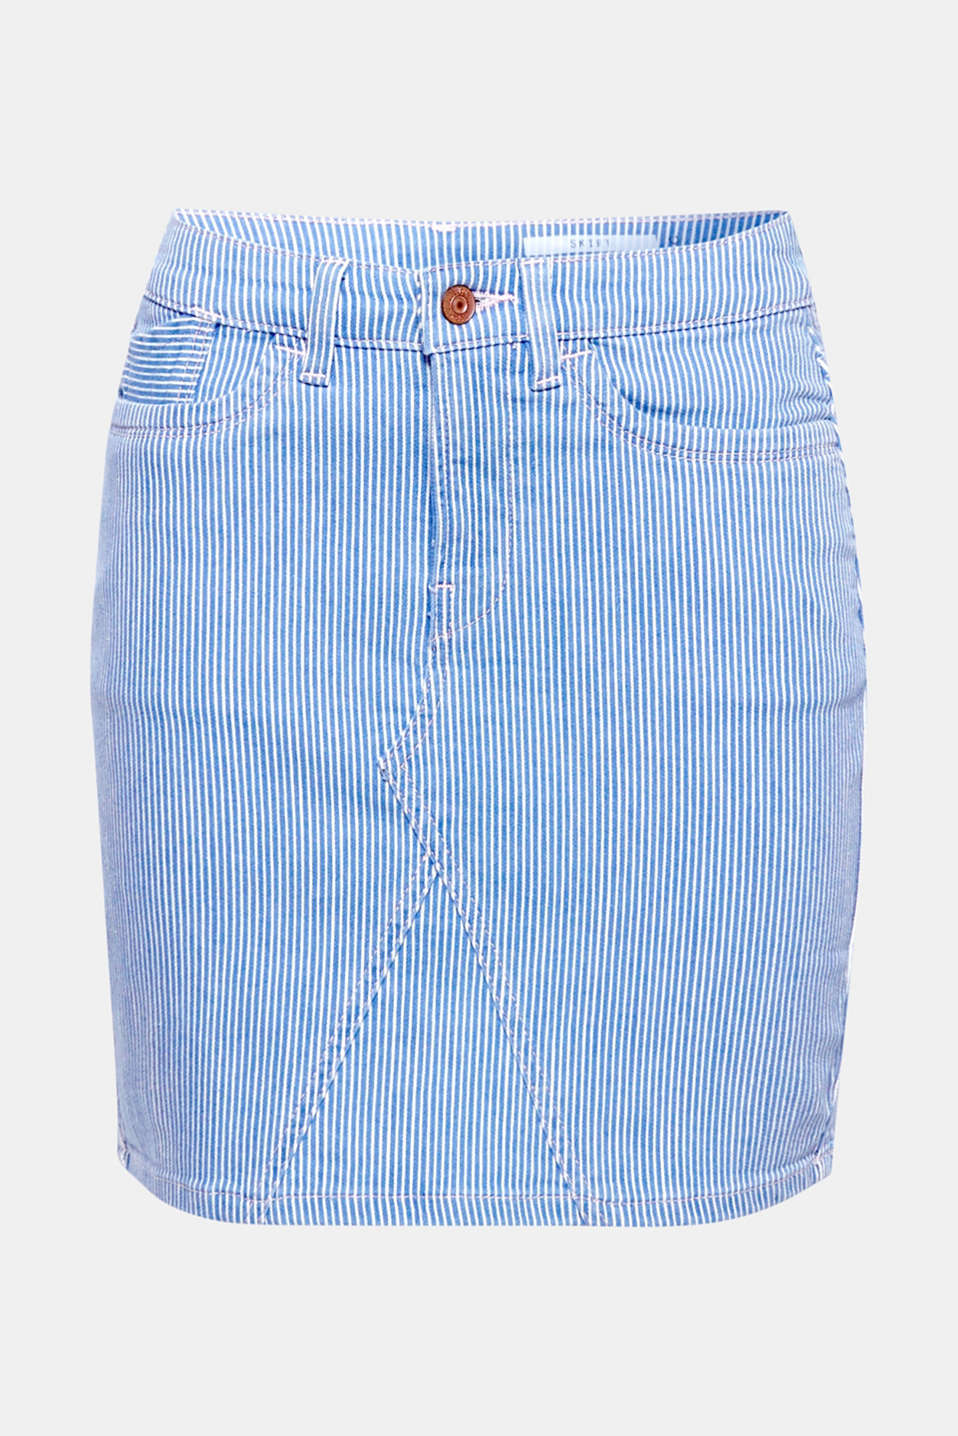 Trendy, fresh stripes and the tight, close-fitting silhouette make this denim skirt a must-have for the summer.